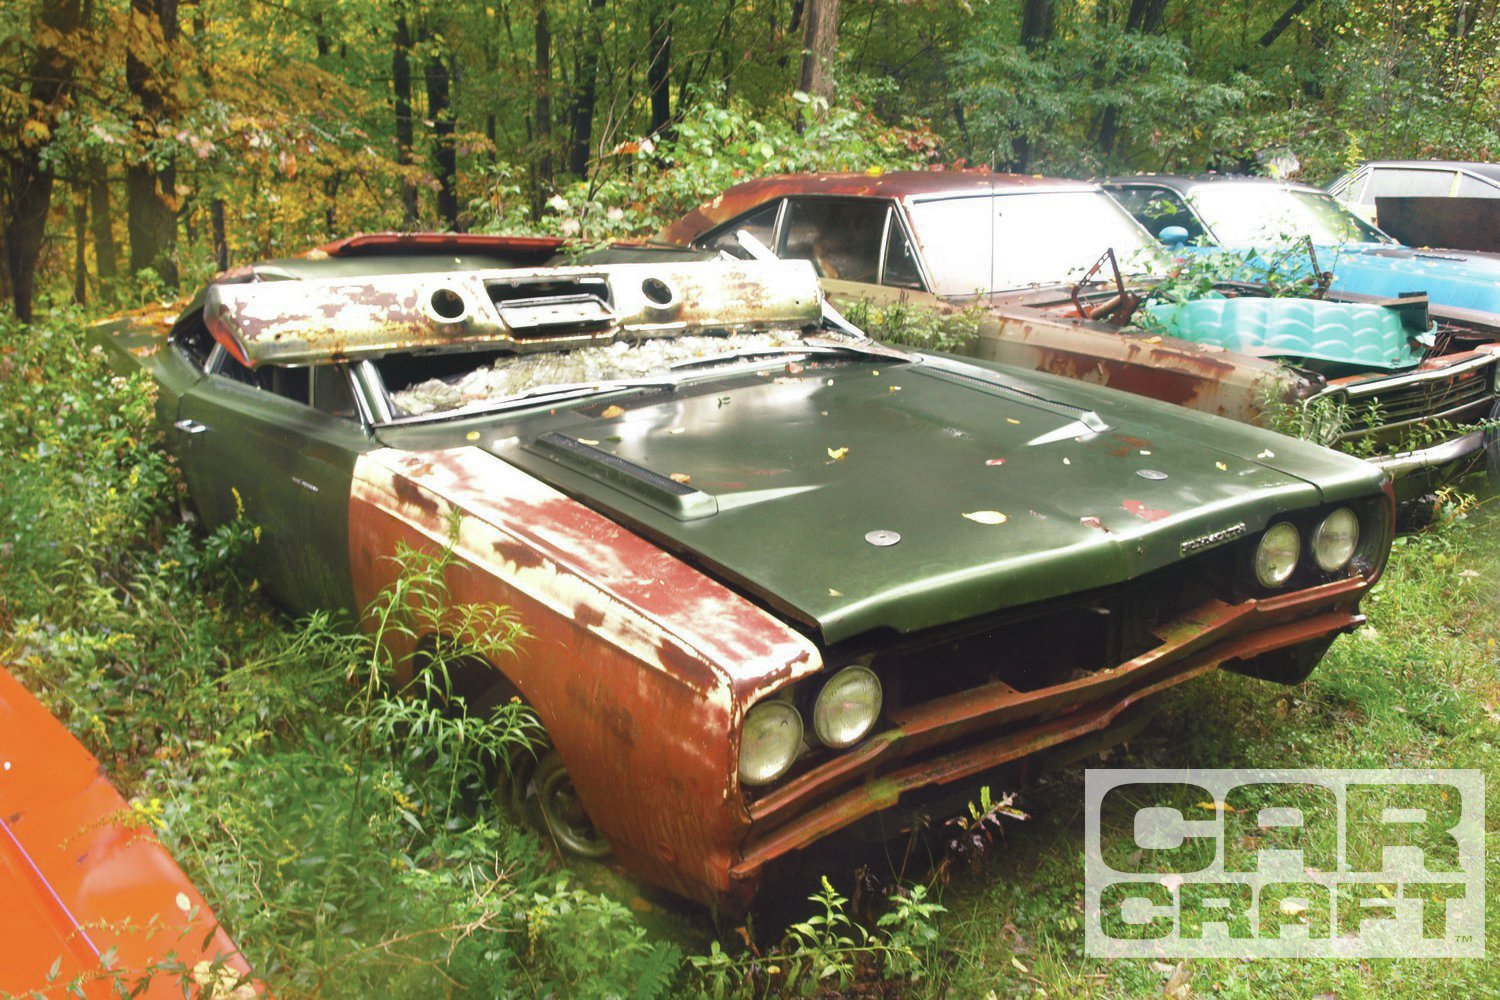 The extra strength of its fixed B-pillars wasn't enough to prevent a years-ago barn collapse from squashing this '69 Hemi Road Runner coupe's lid. Still wearing most of the Ivy Green metallic paint applied at the Lynch Road, Michigan, assembly plant, it is one of 162 pillar coupes built with the 727 Torqueflite transmission. 1969 was the peak year for Road Runner production with 82,109 made. Of them, only 788 buyers coughed up the $813.45 for Hemi power.